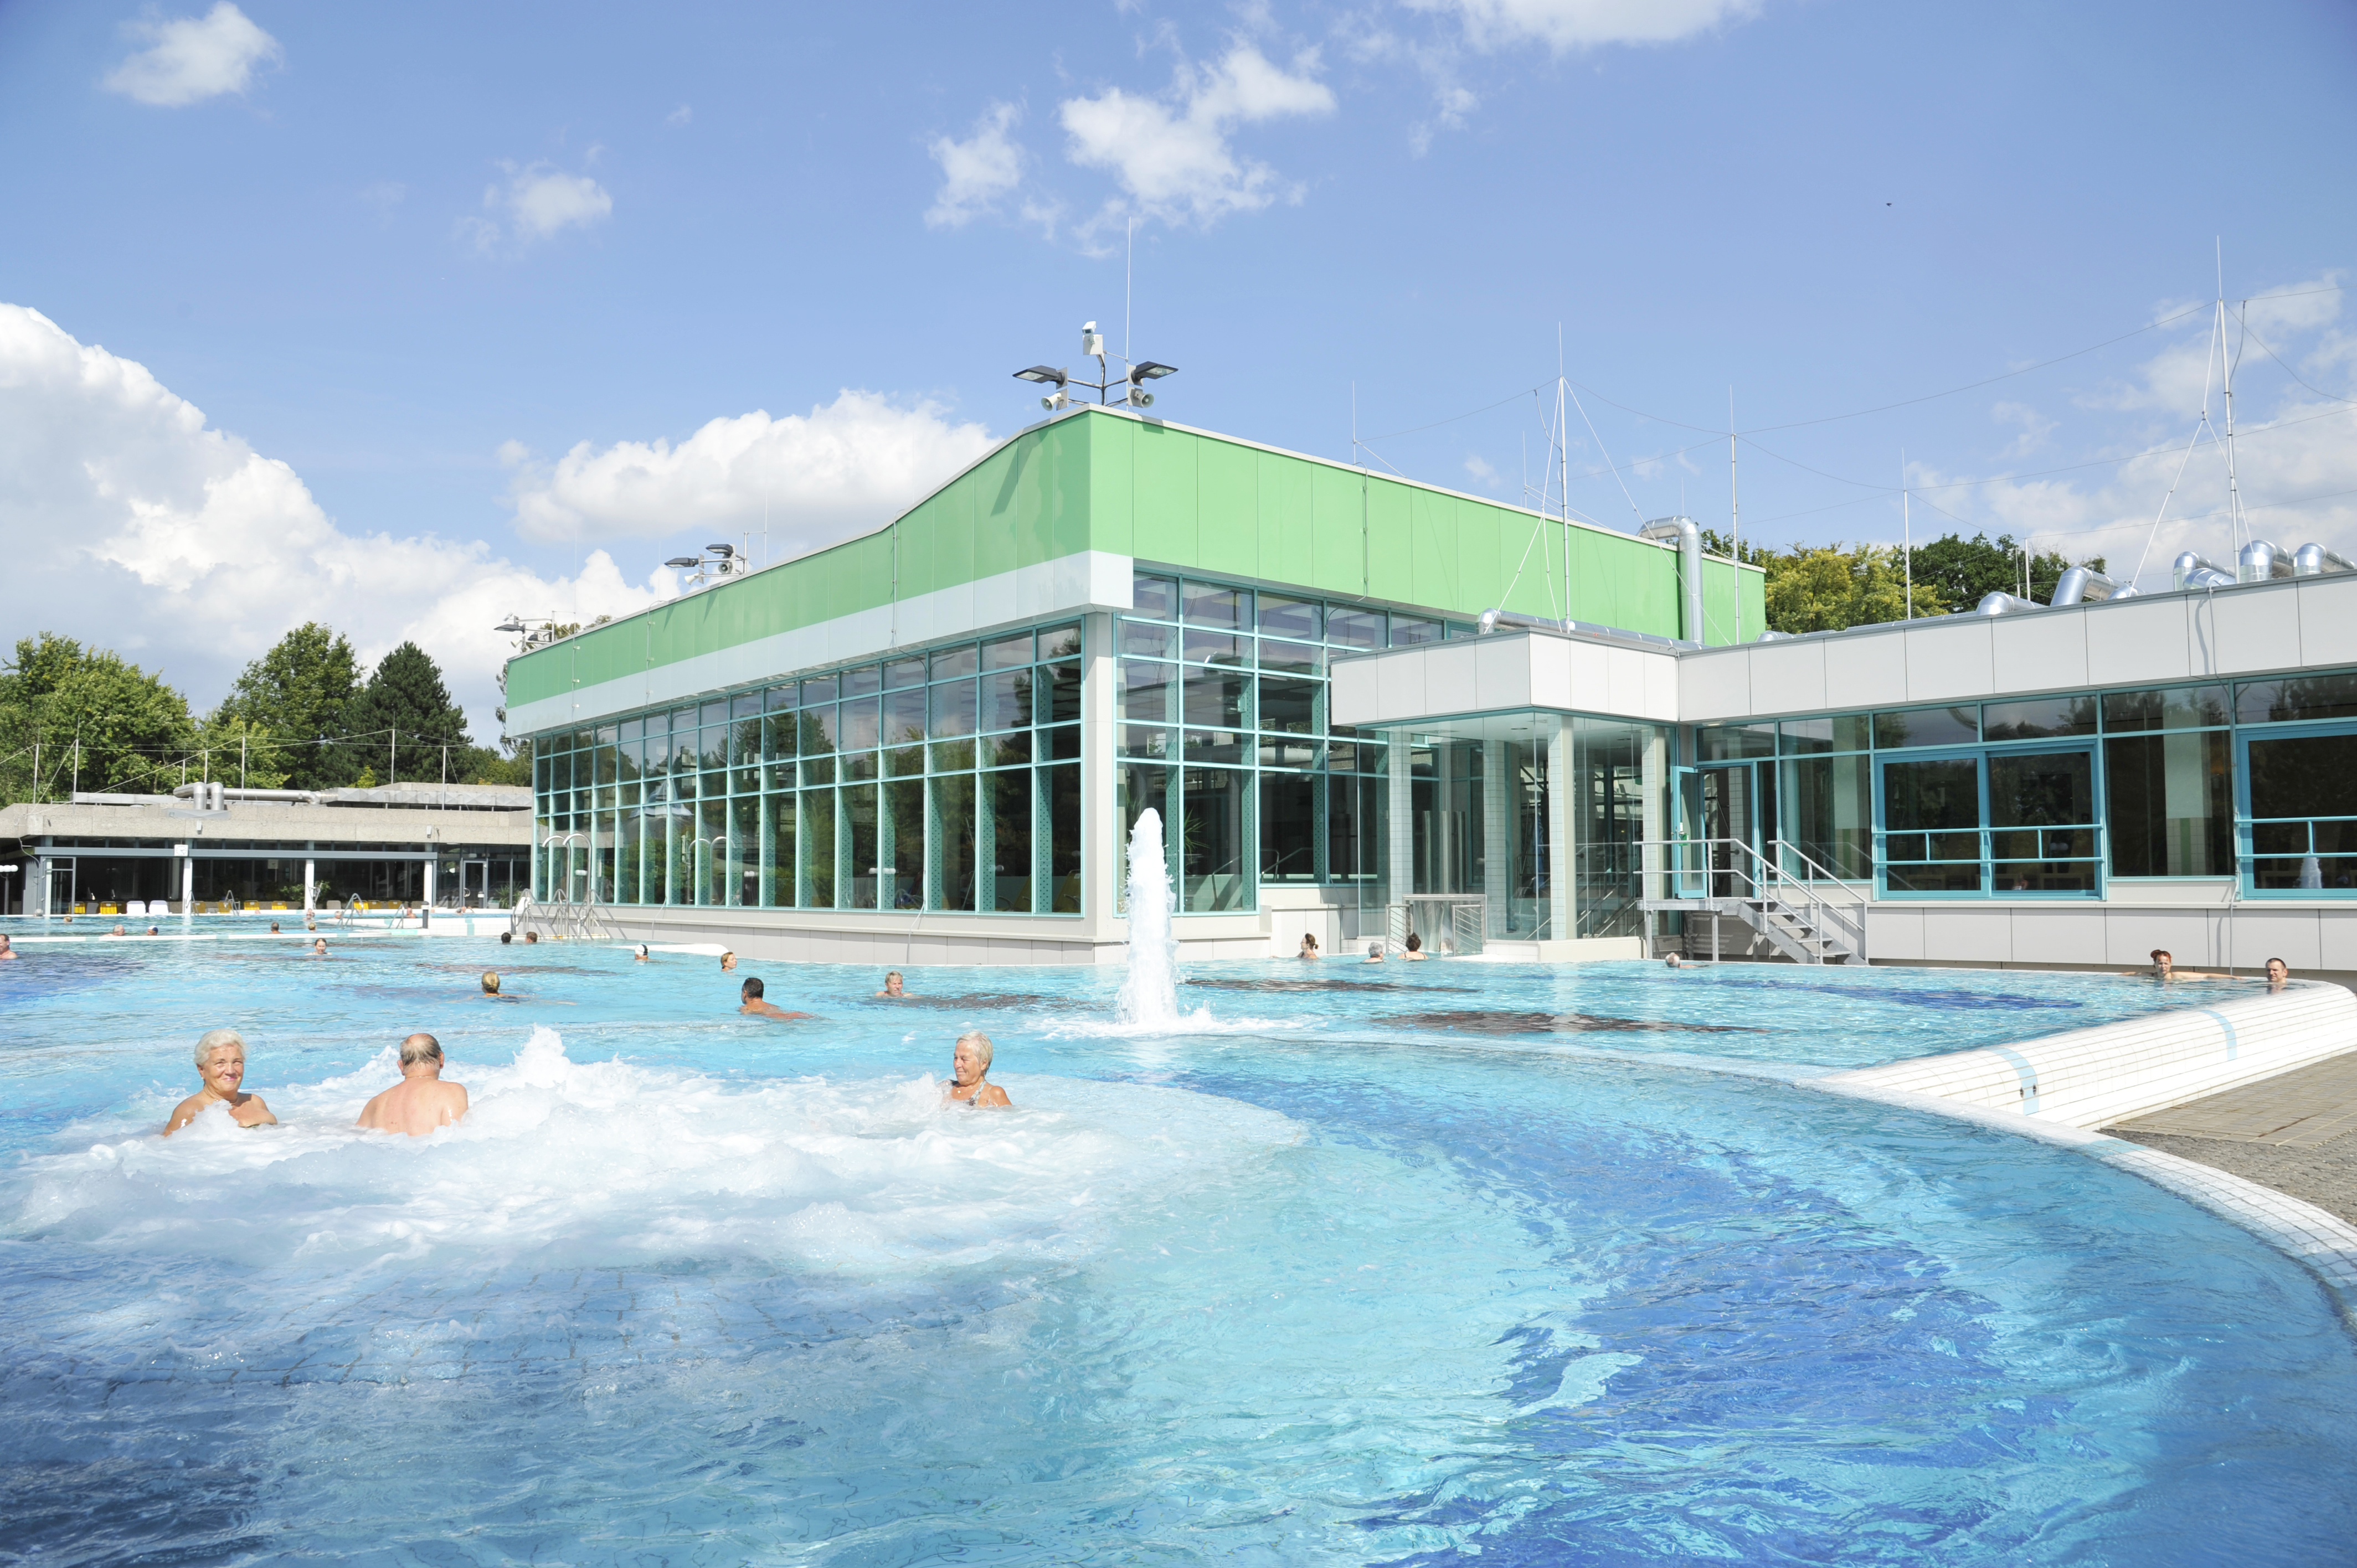 Jod Sole Therme Bad Bevensen